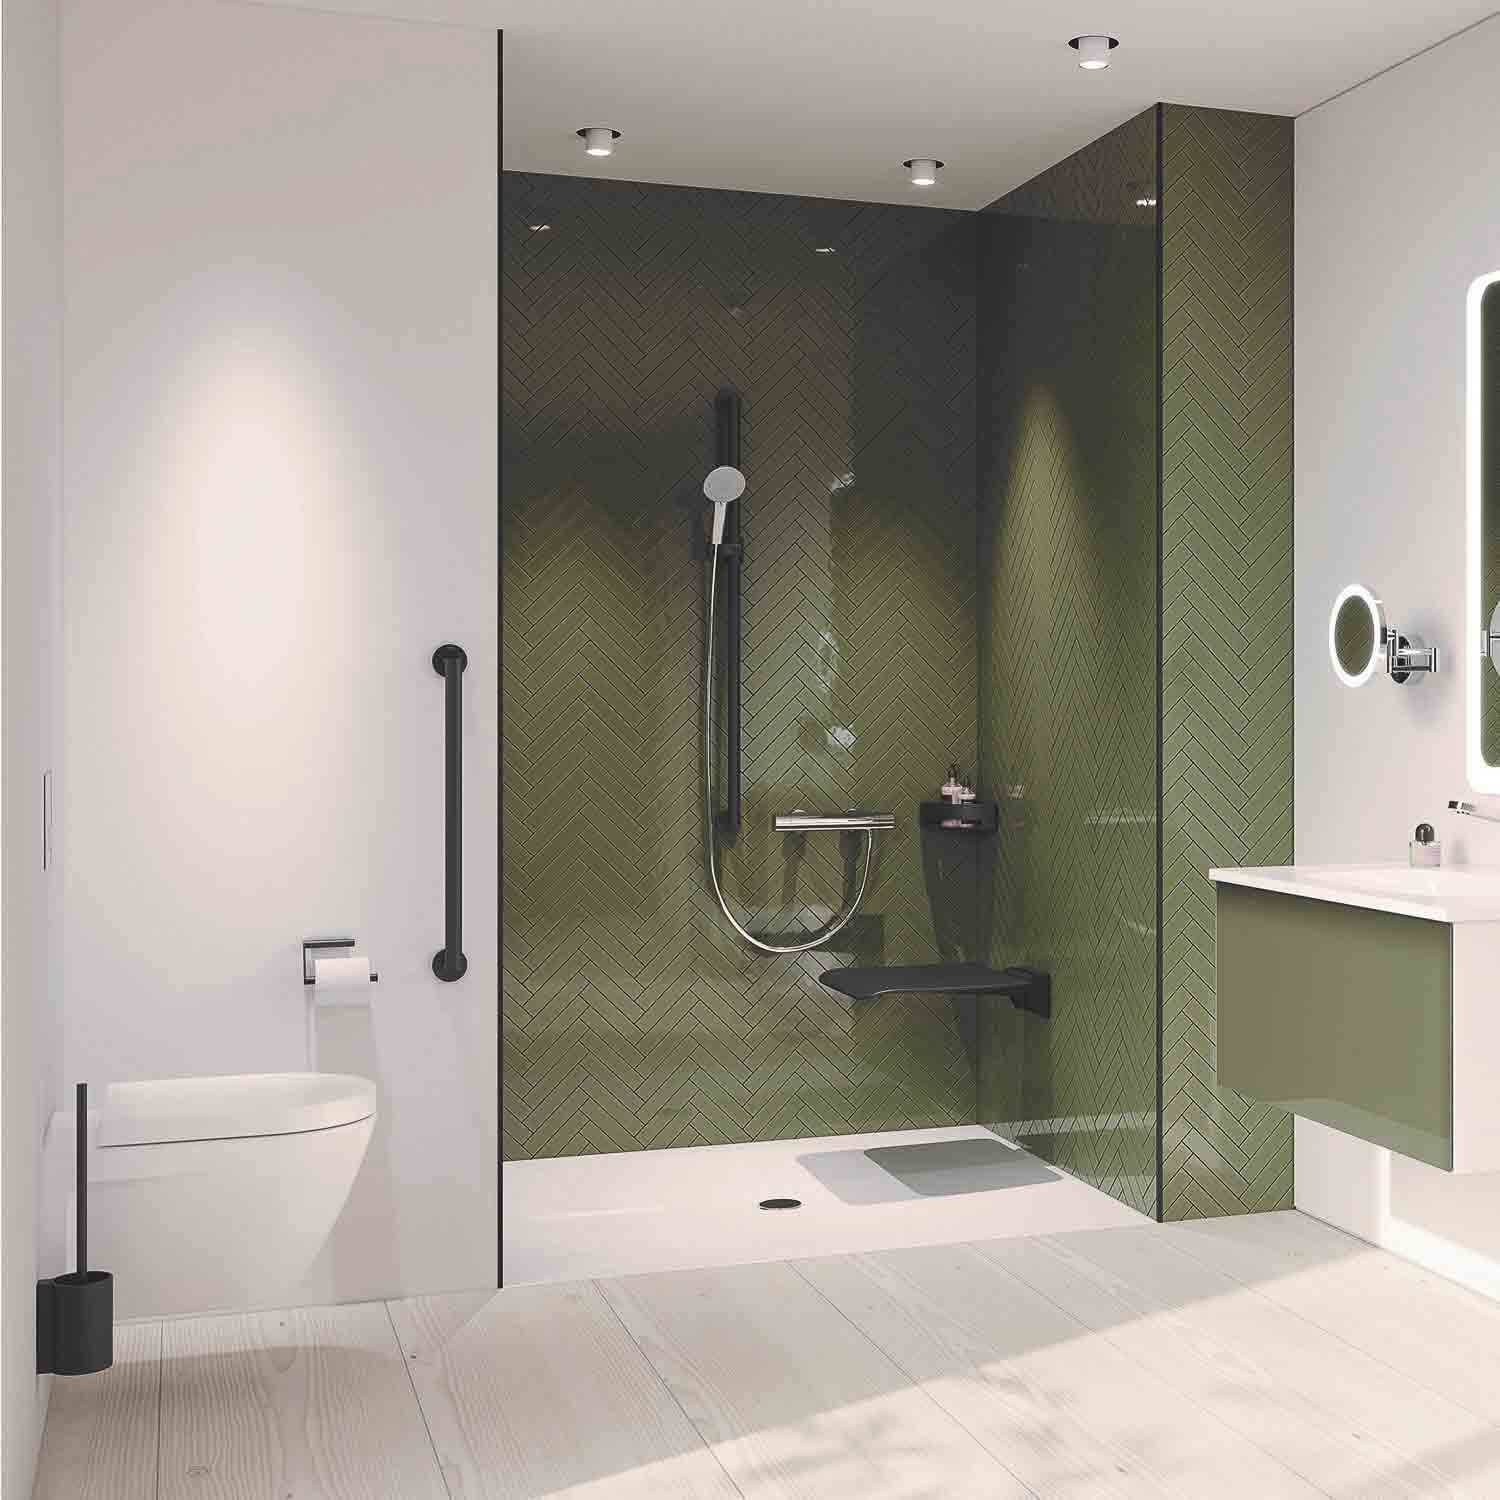 900mm Freestyle Supportive Shower Rail with a matt black finish lifestyle image